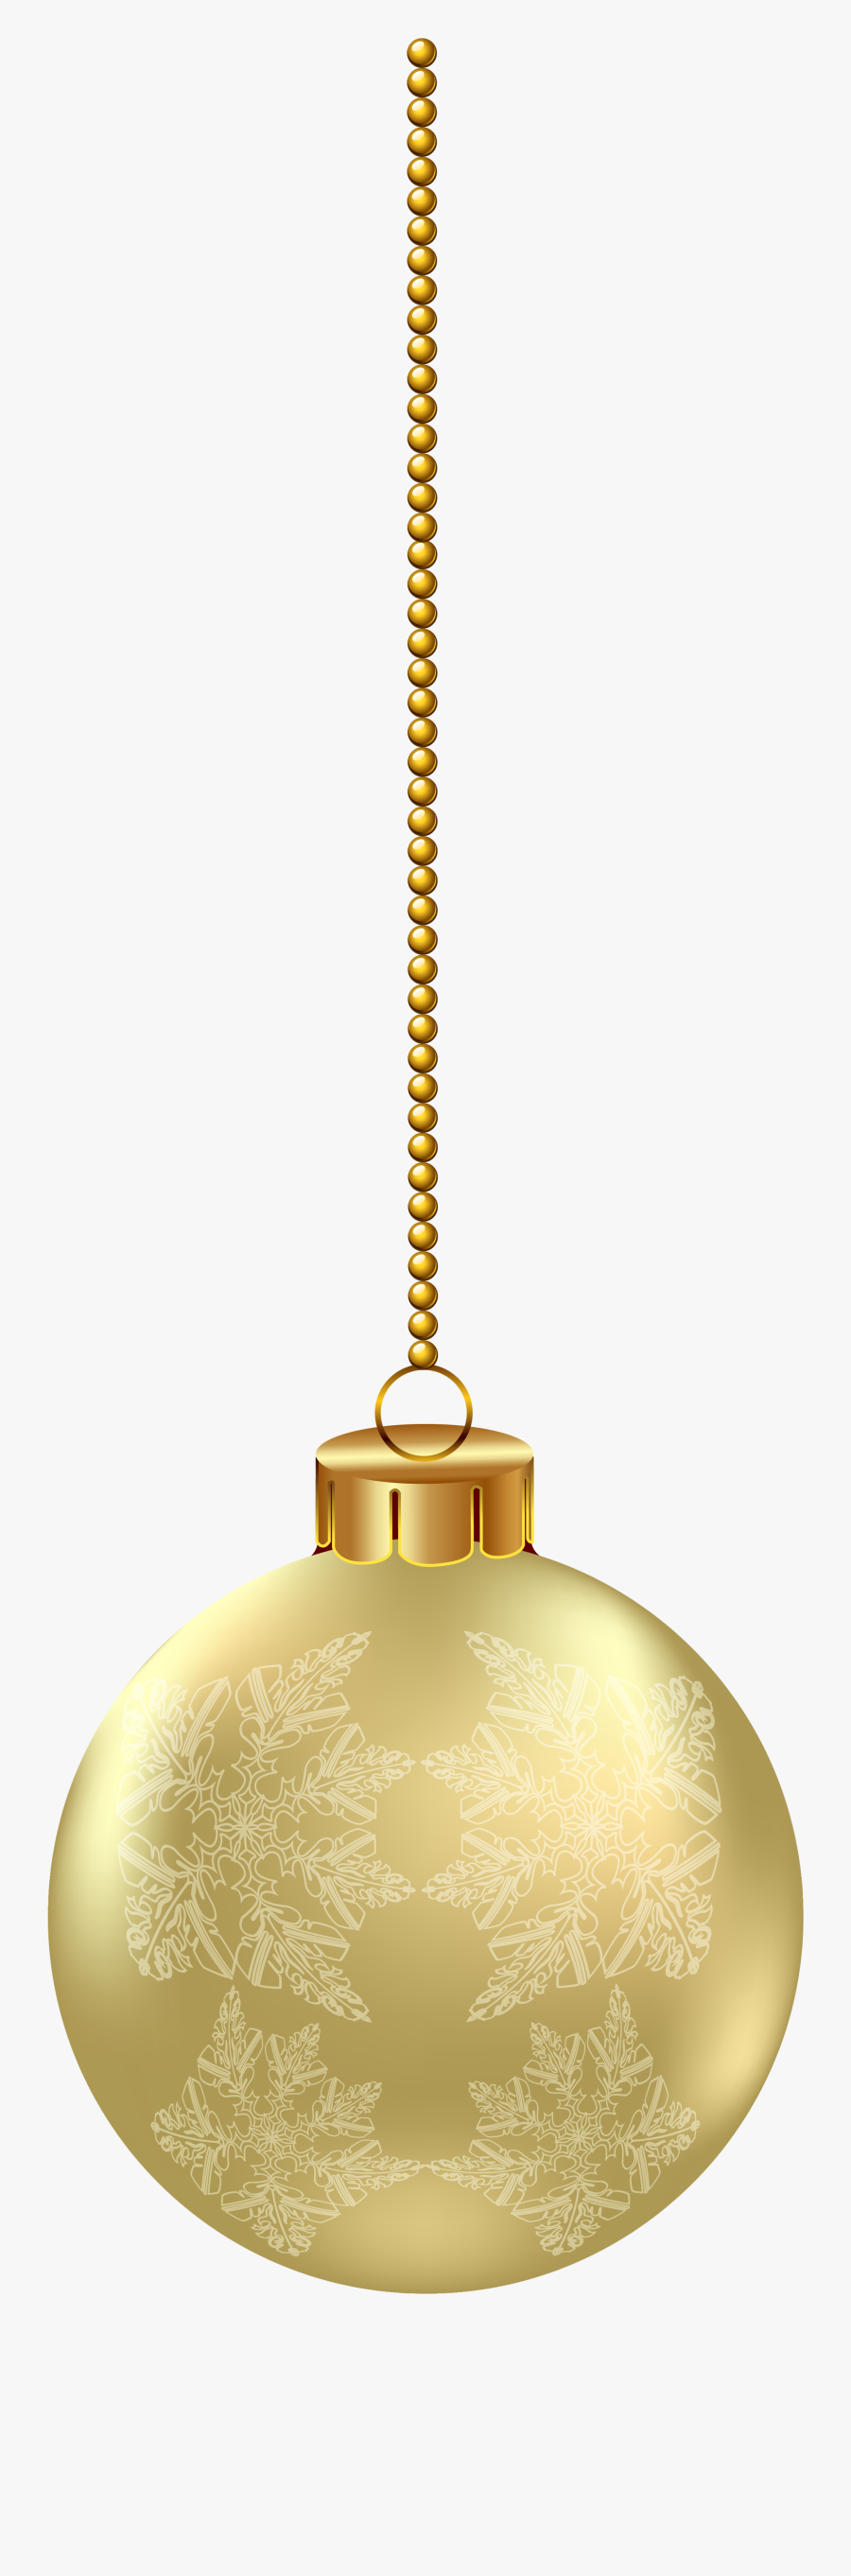 Hanging Christmas Ornament Png Clipart Image Hanging